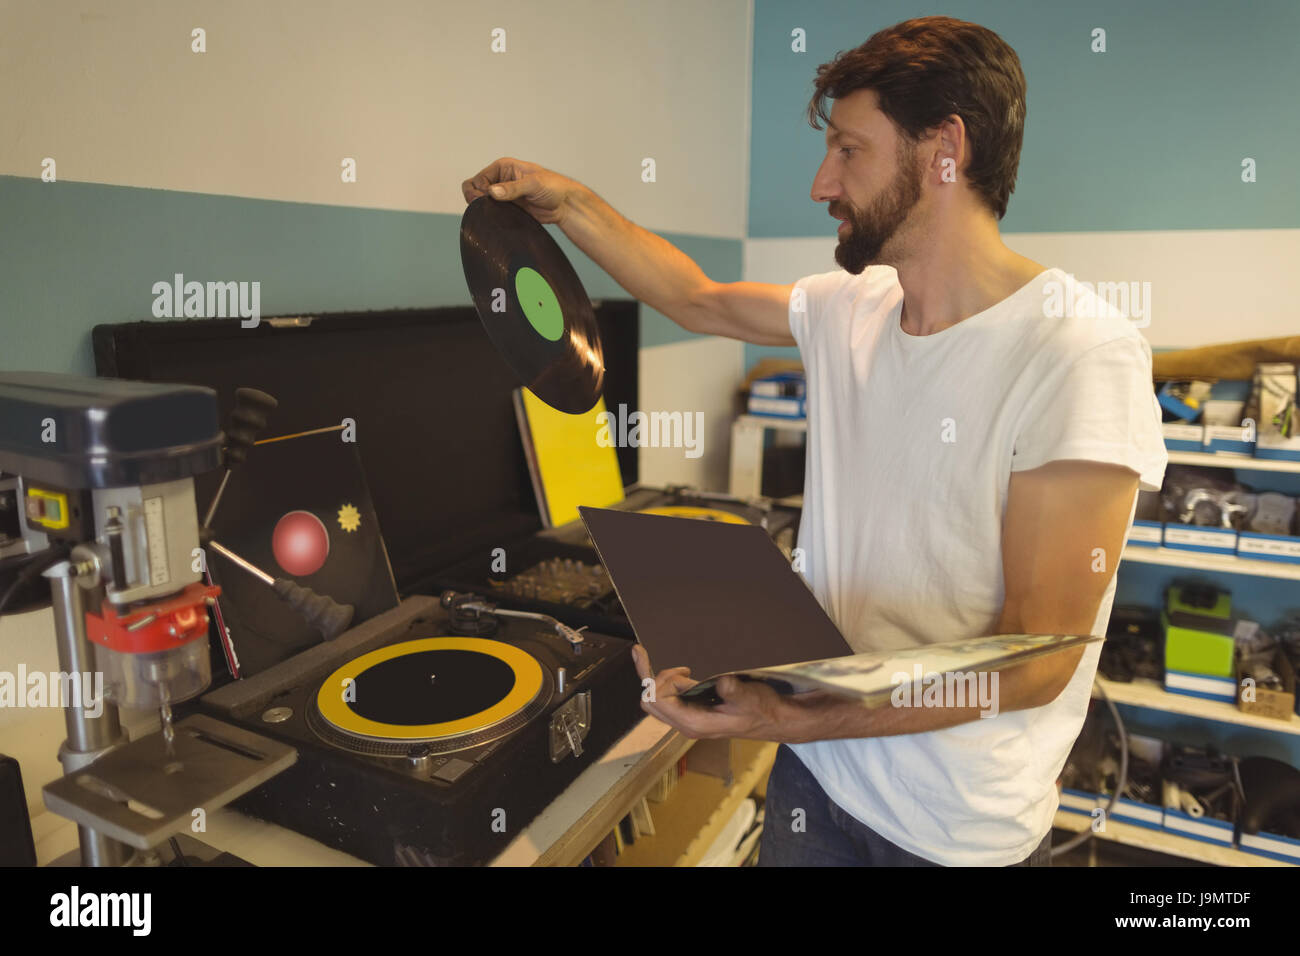 Worker holding record by turntable at bicycle workshop - Stock Image